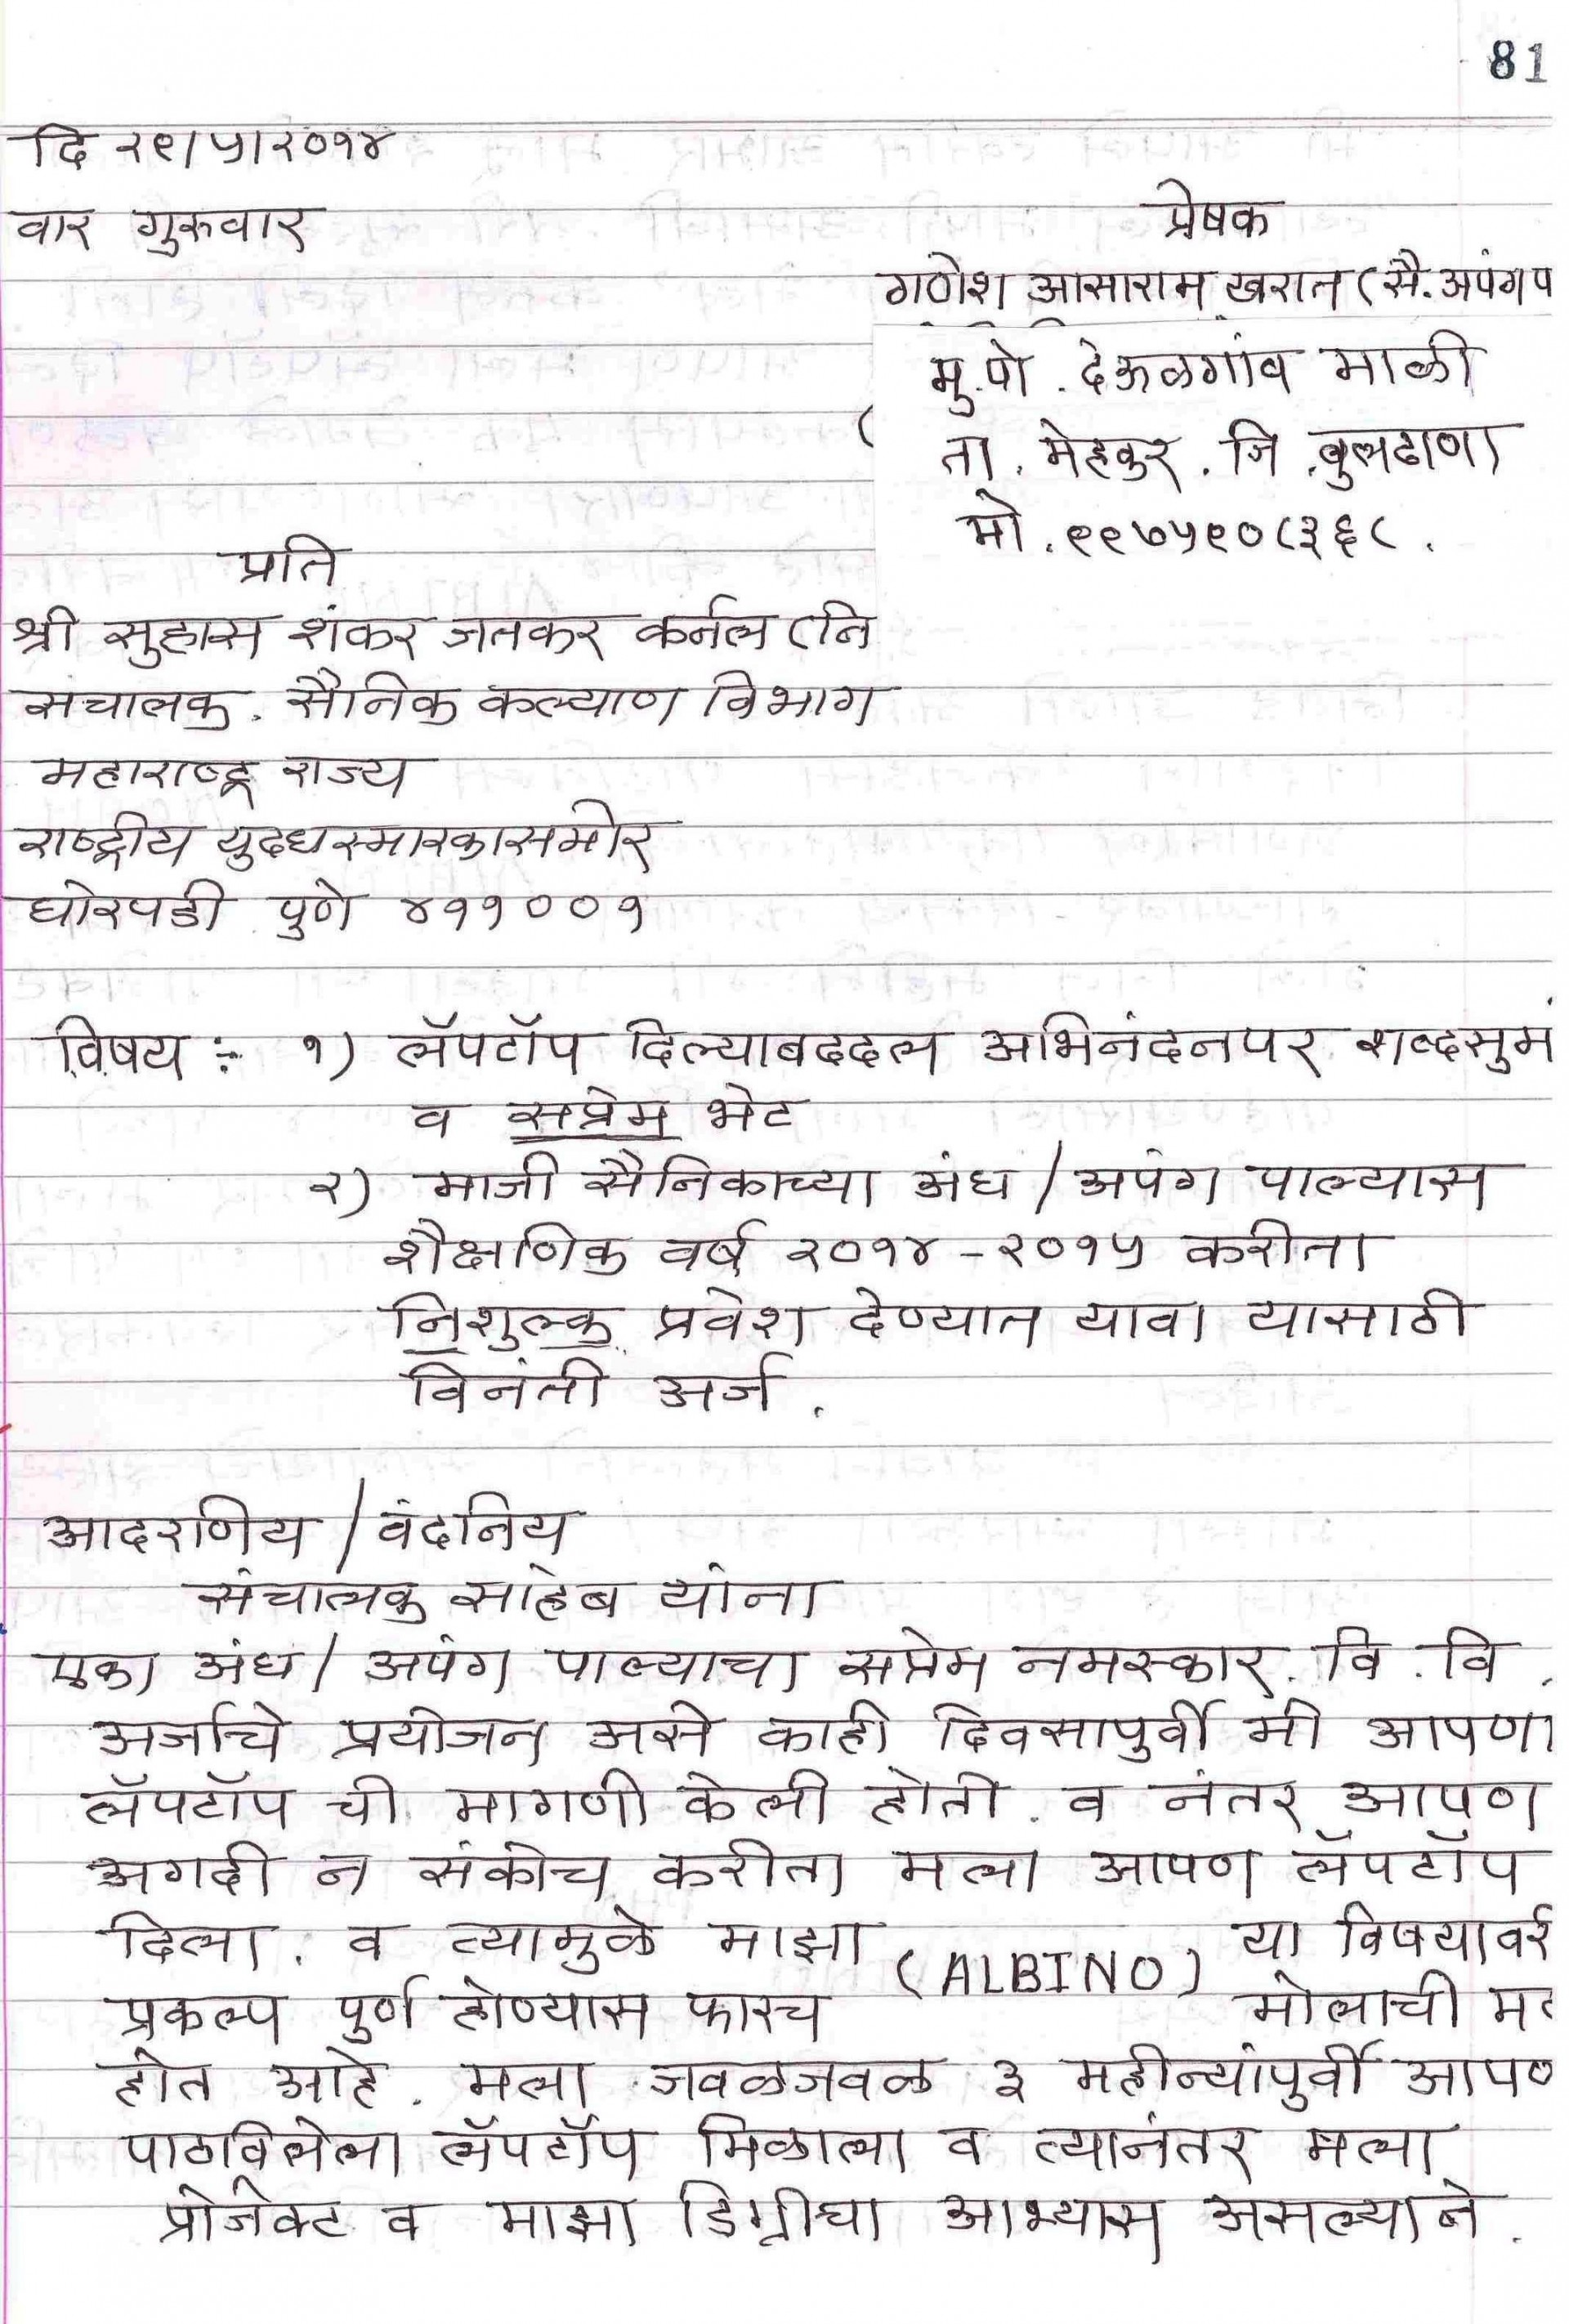 004 Staggering Hindi Letter Writing Format Pdf Free Download Concept 1920